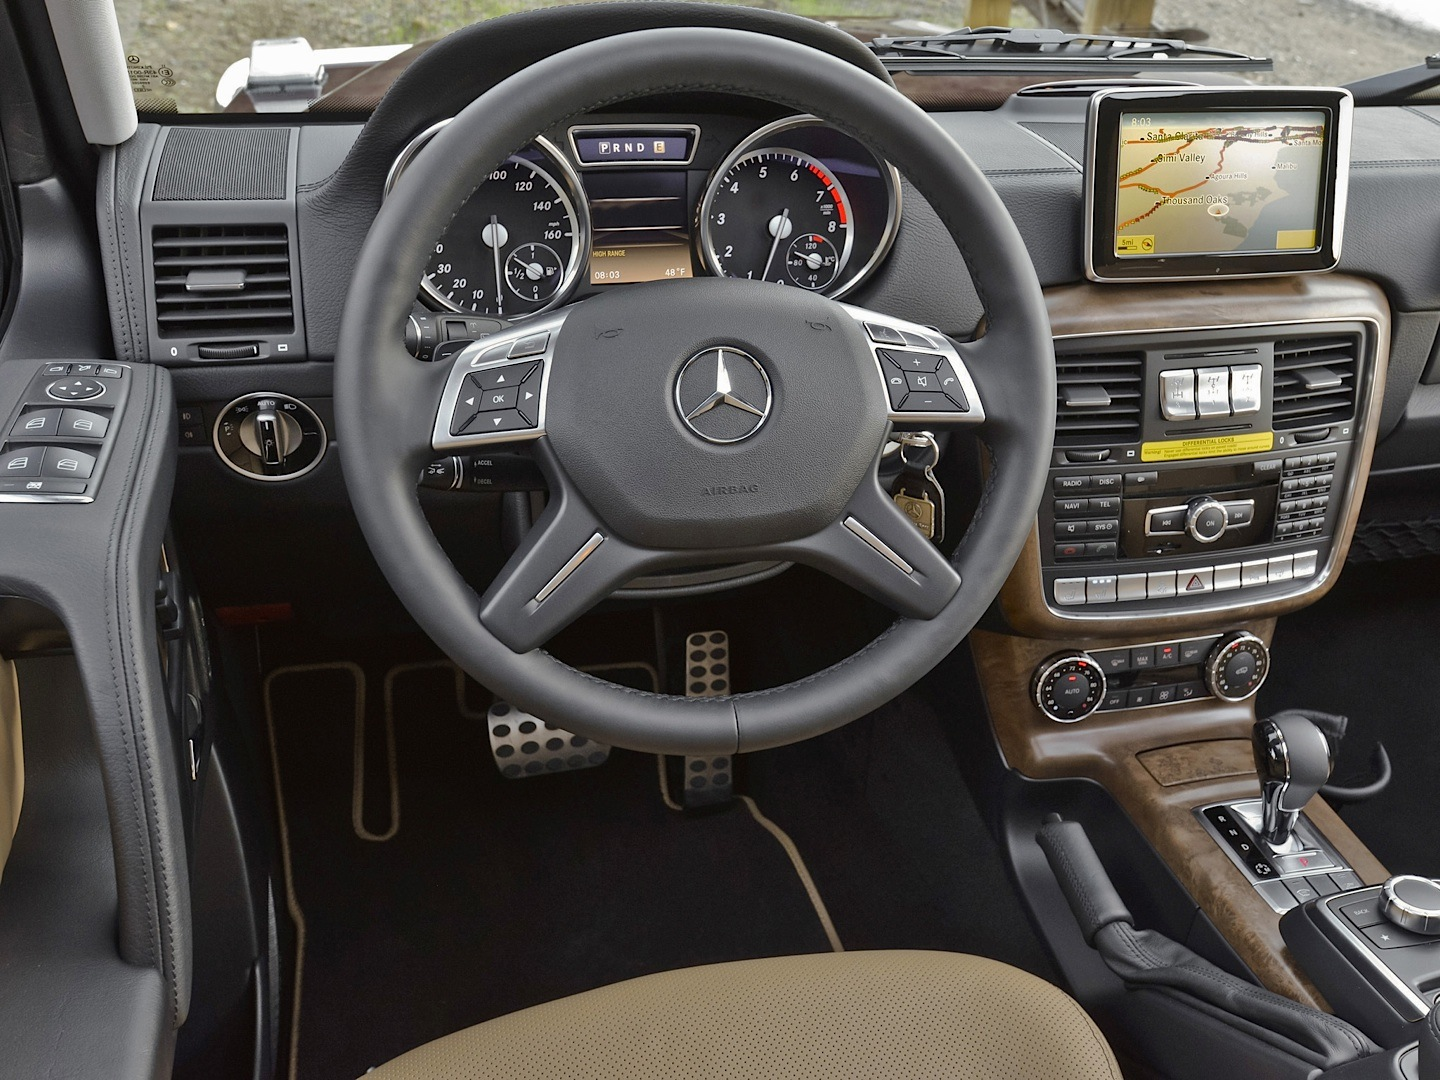 Mercedes benz g550 real suv review by autoweek for 2017 mercedes benz g550 interior